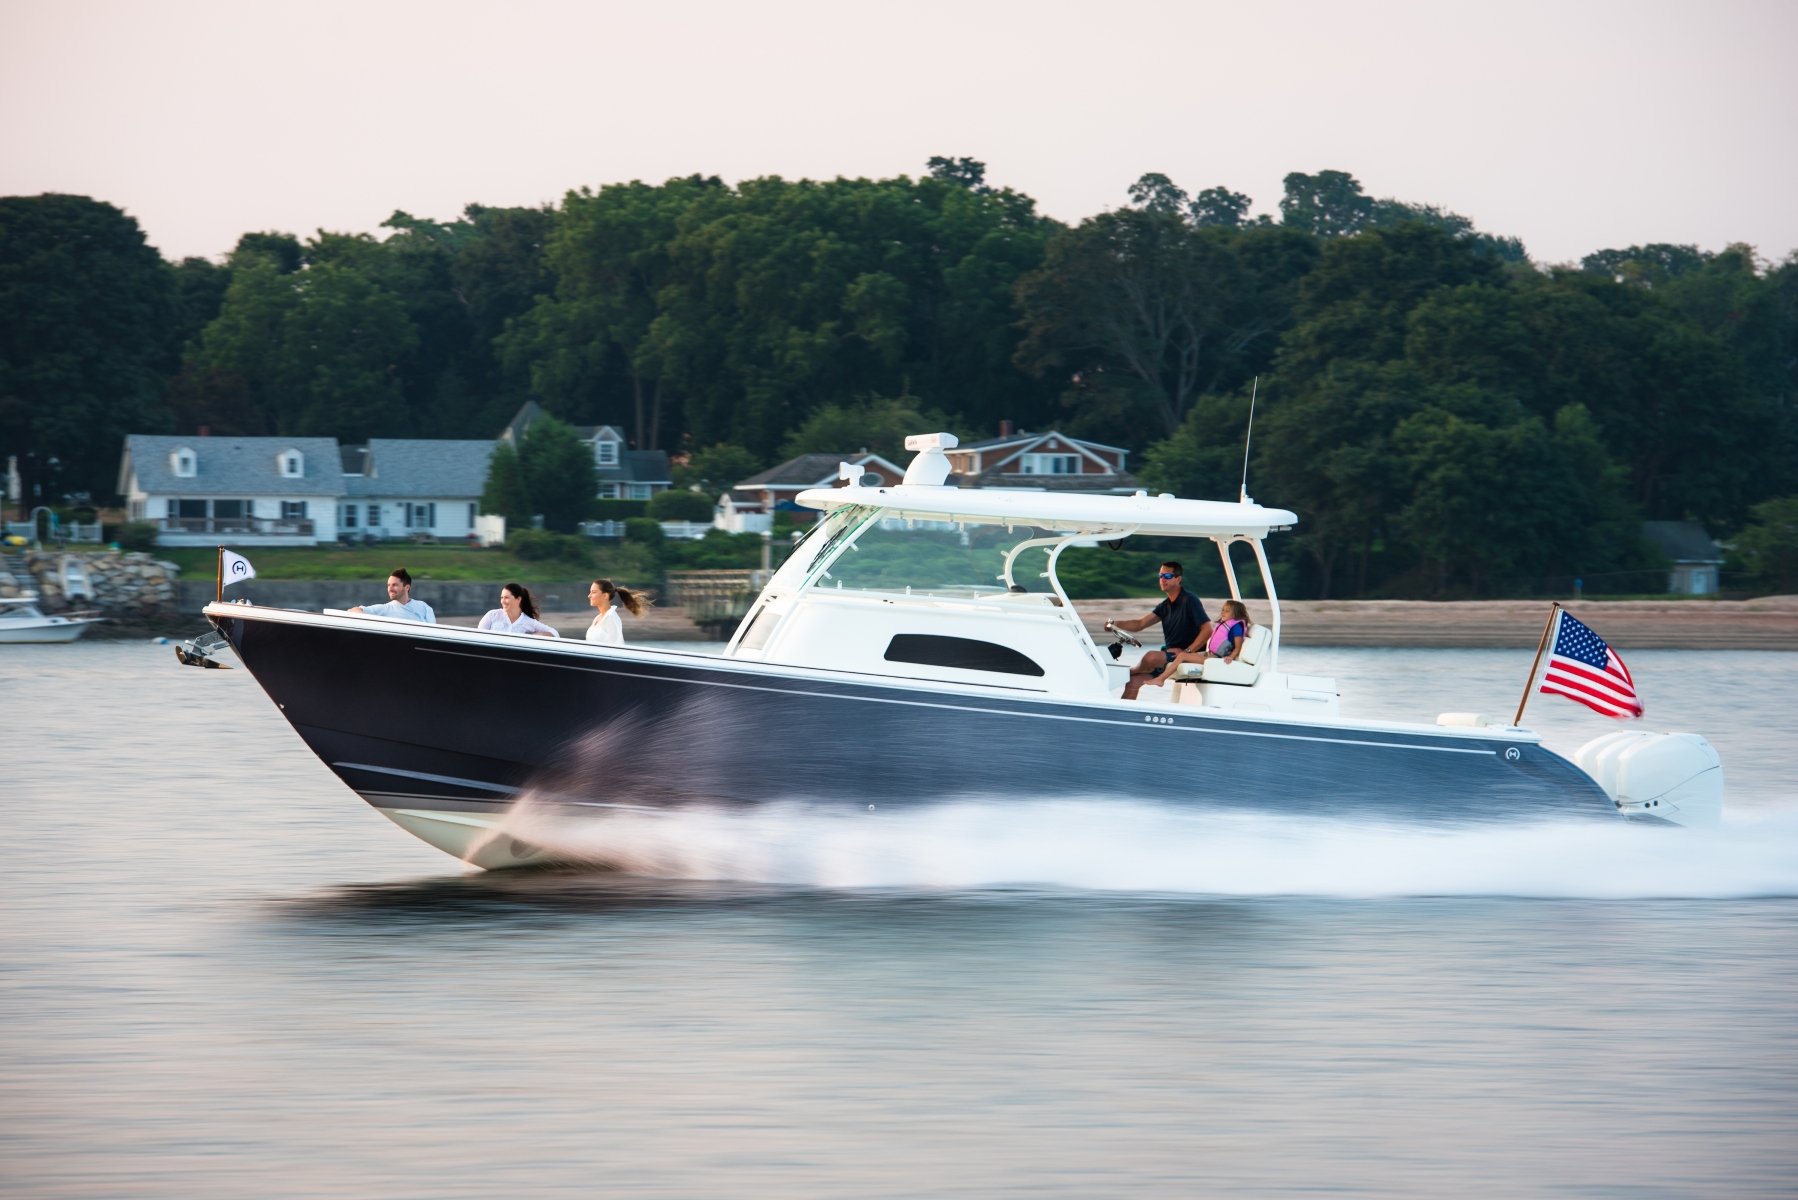 The high-performance Hinckley 40C, the initial model from the company's new Sport Boat line, boasts a 63mph top speed and a sticker price of $735,000. (Photo credit: courtesy of Hinckley)